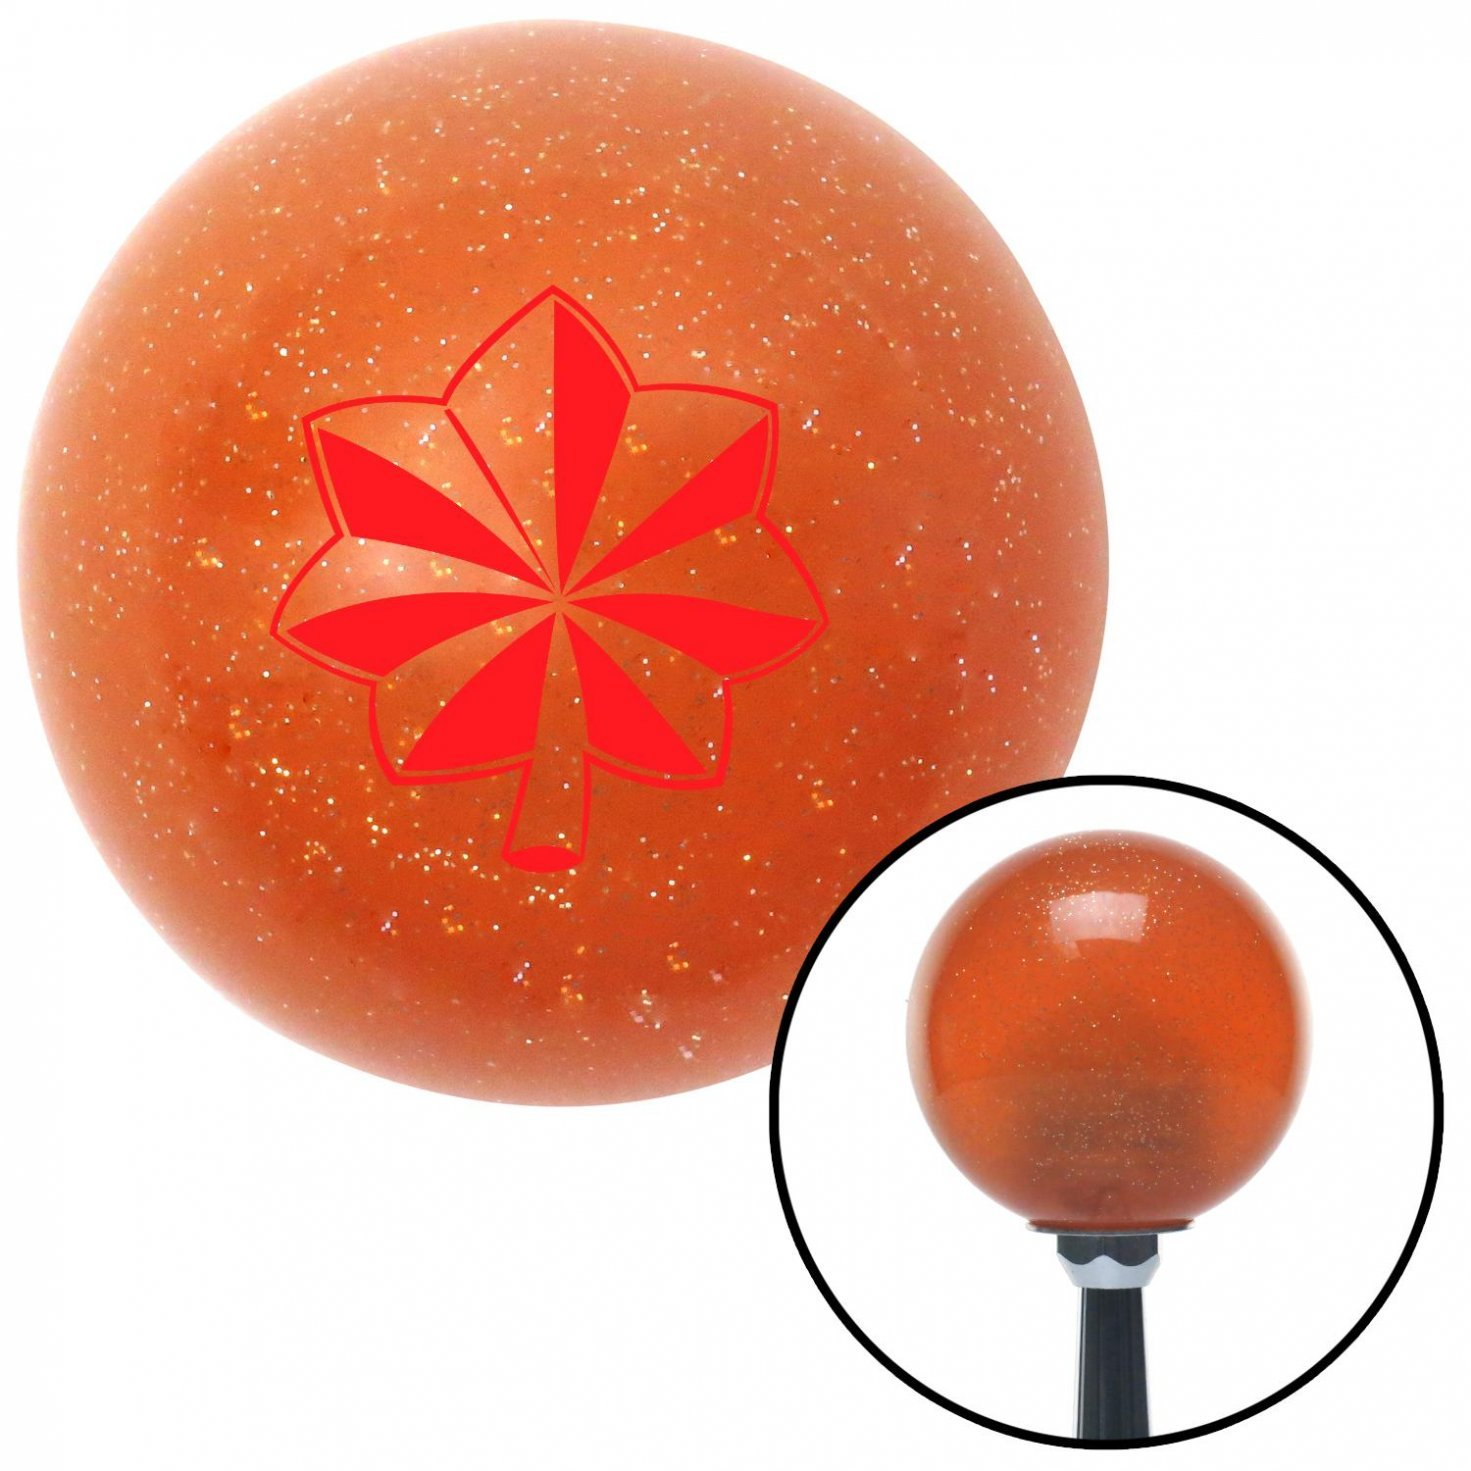 Red Officer 04 - Major and Lt. Colonel American Shifter 44665 Orange Metal Flake Shift Knob with 16mm x 1.5 Insert